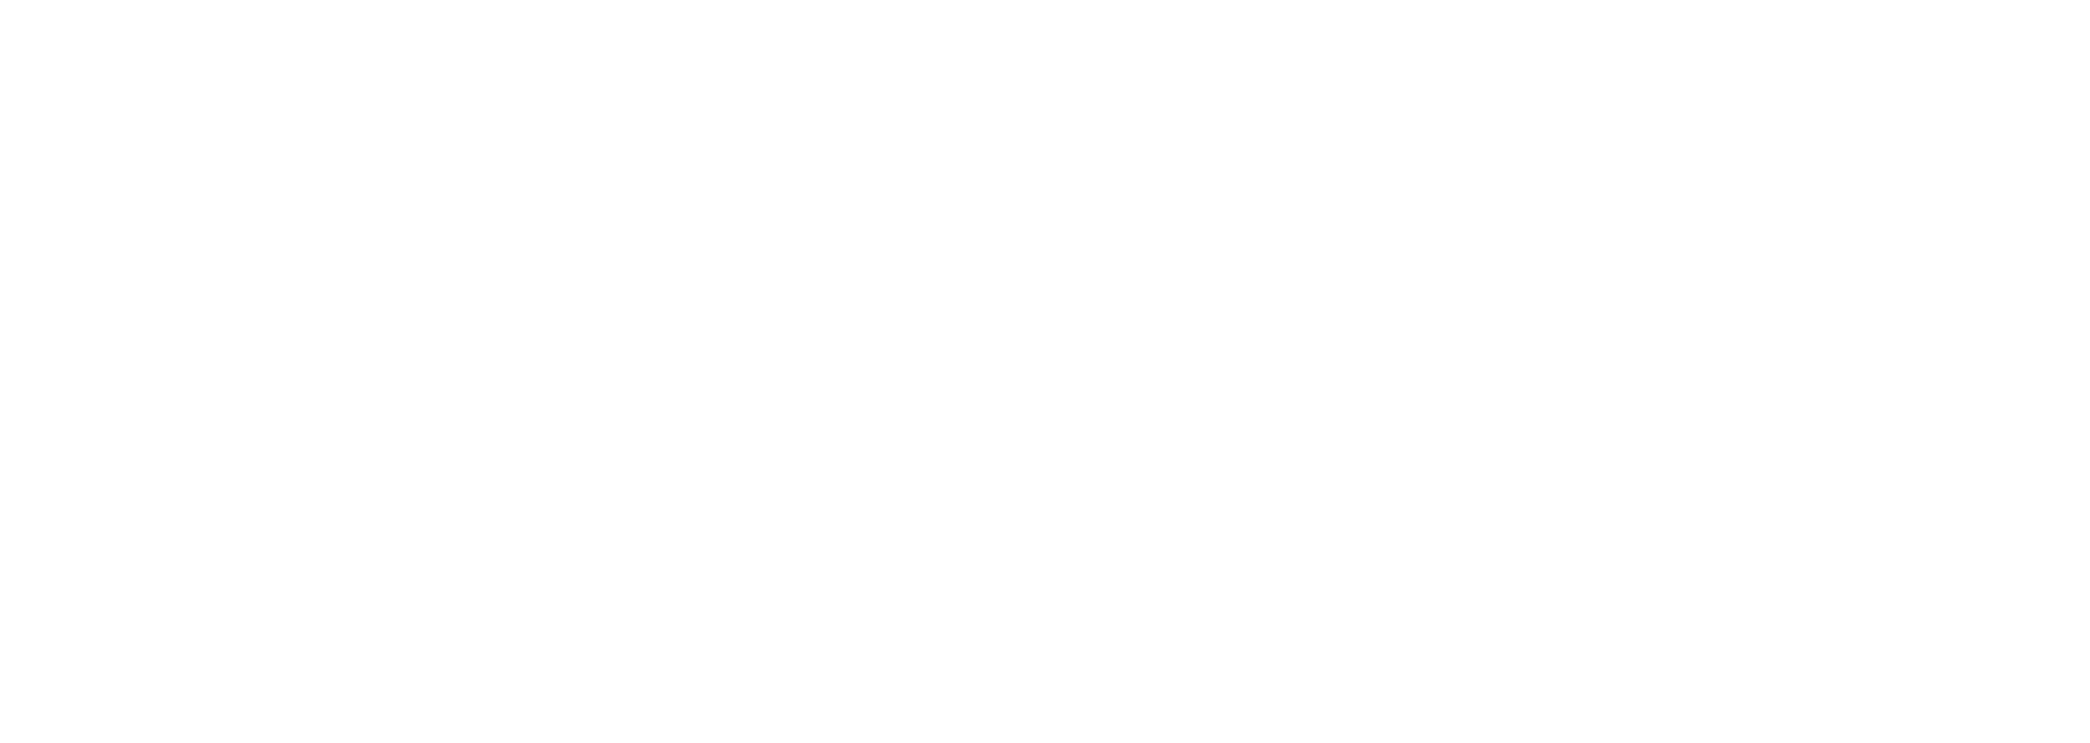 Scheid Vineyards logo